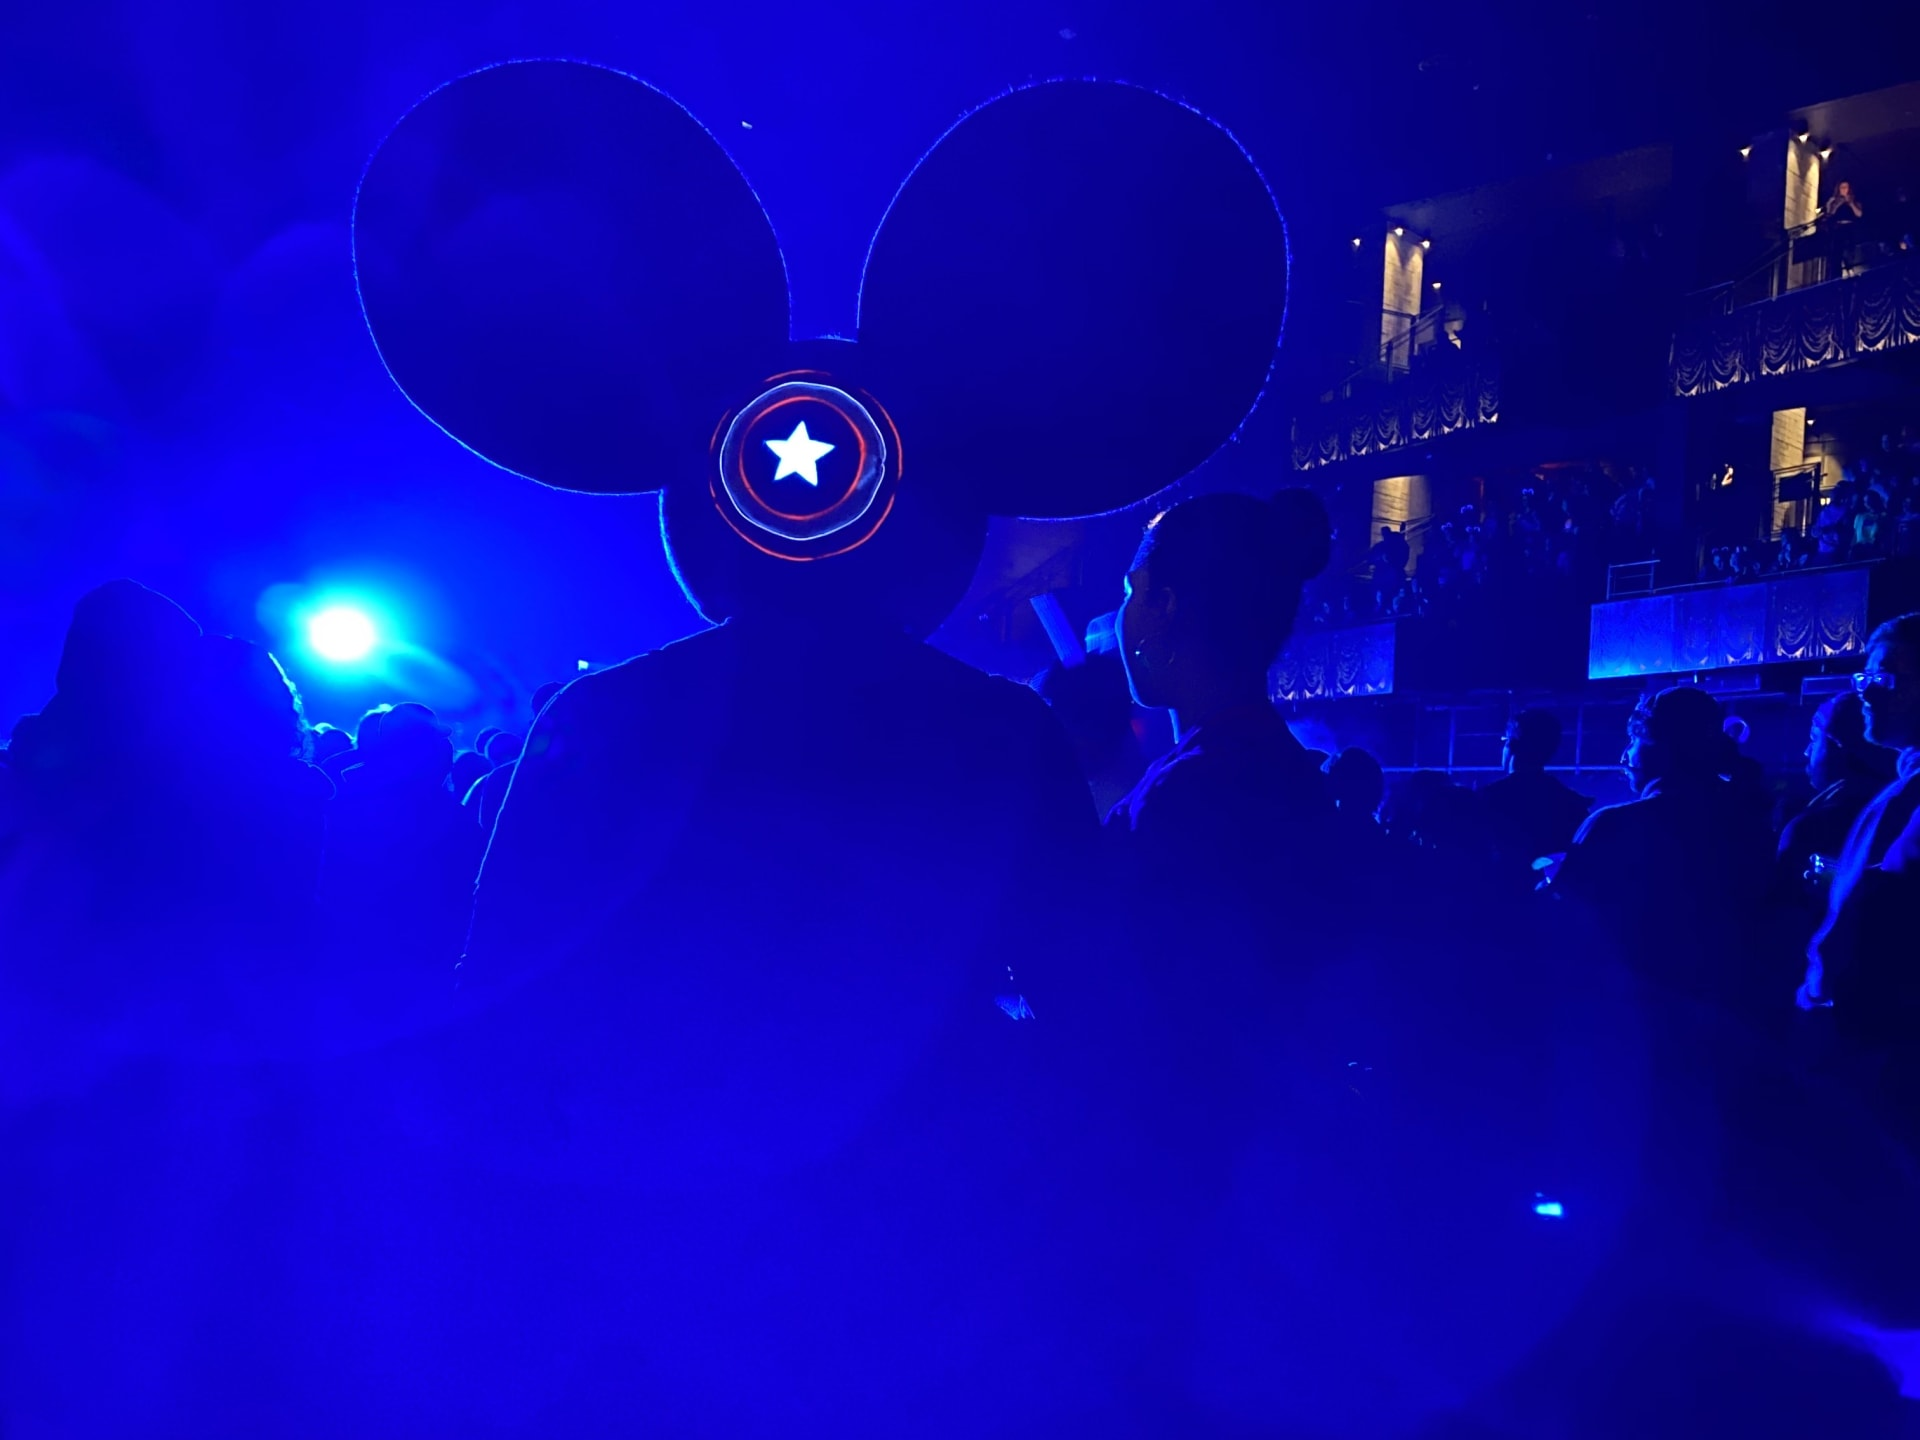 deadmau5 captain america cosplay